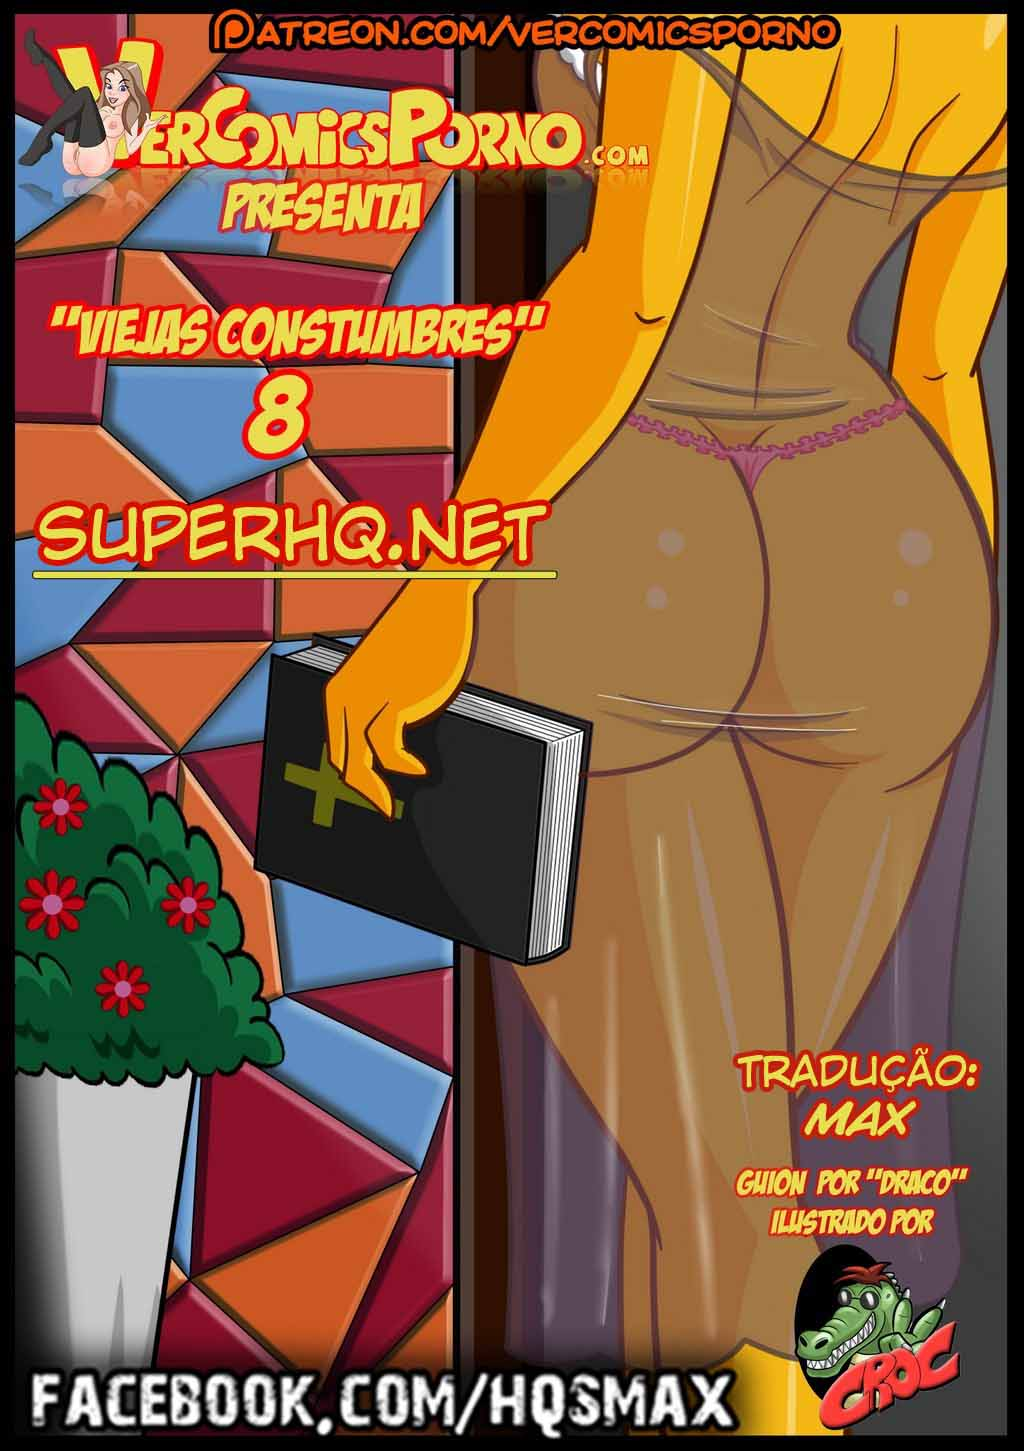 Velhos Costumes 8 [Portugues] – Os Simpsons